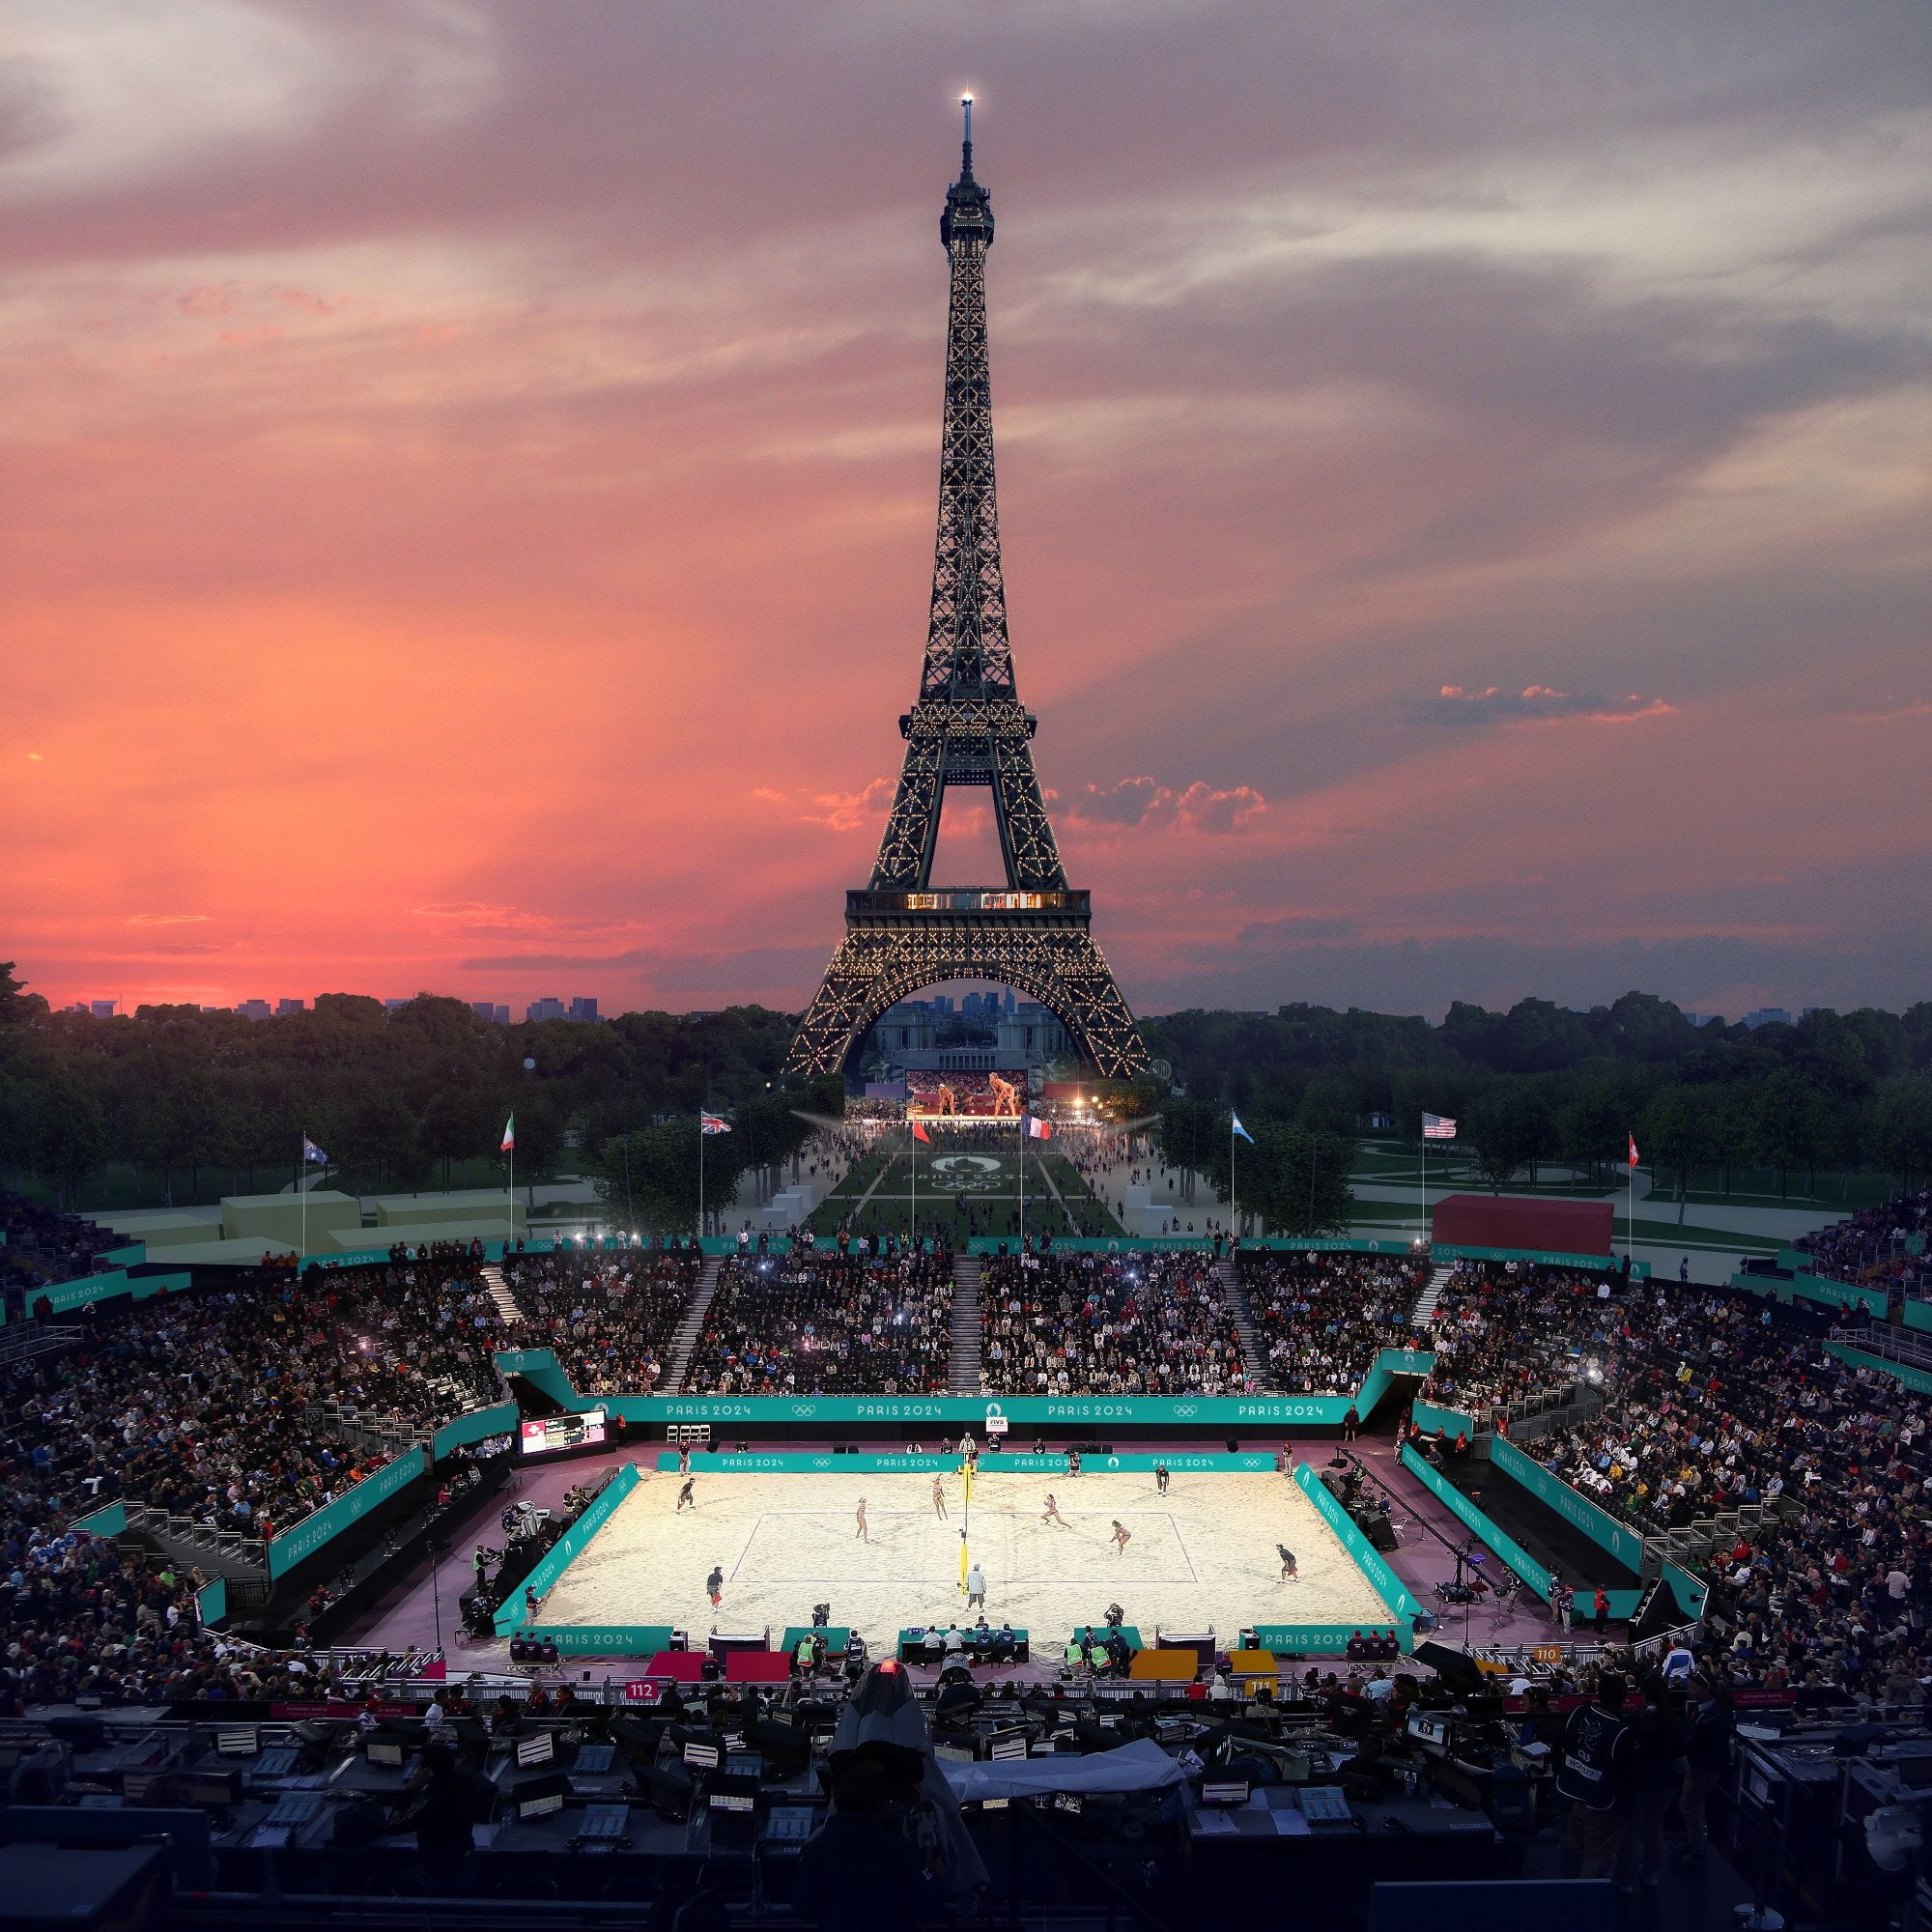 20 Olympics to feature Paris landmarks, including Eiffel Tower